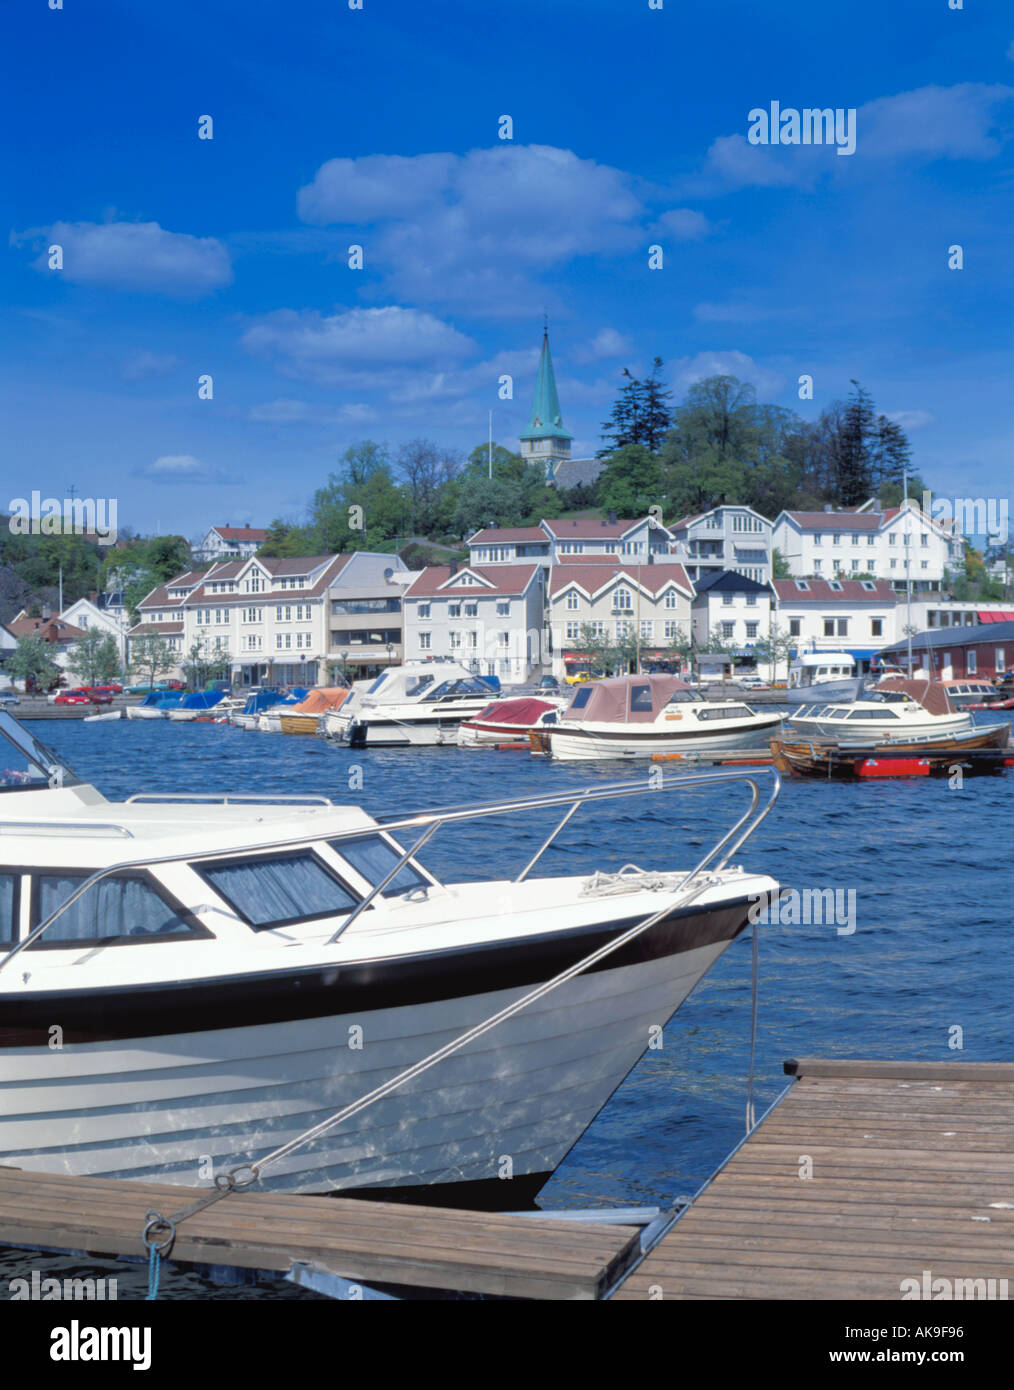 View over boats and harbour Grimstad, Aust-Agder, Norway. - Stock Image